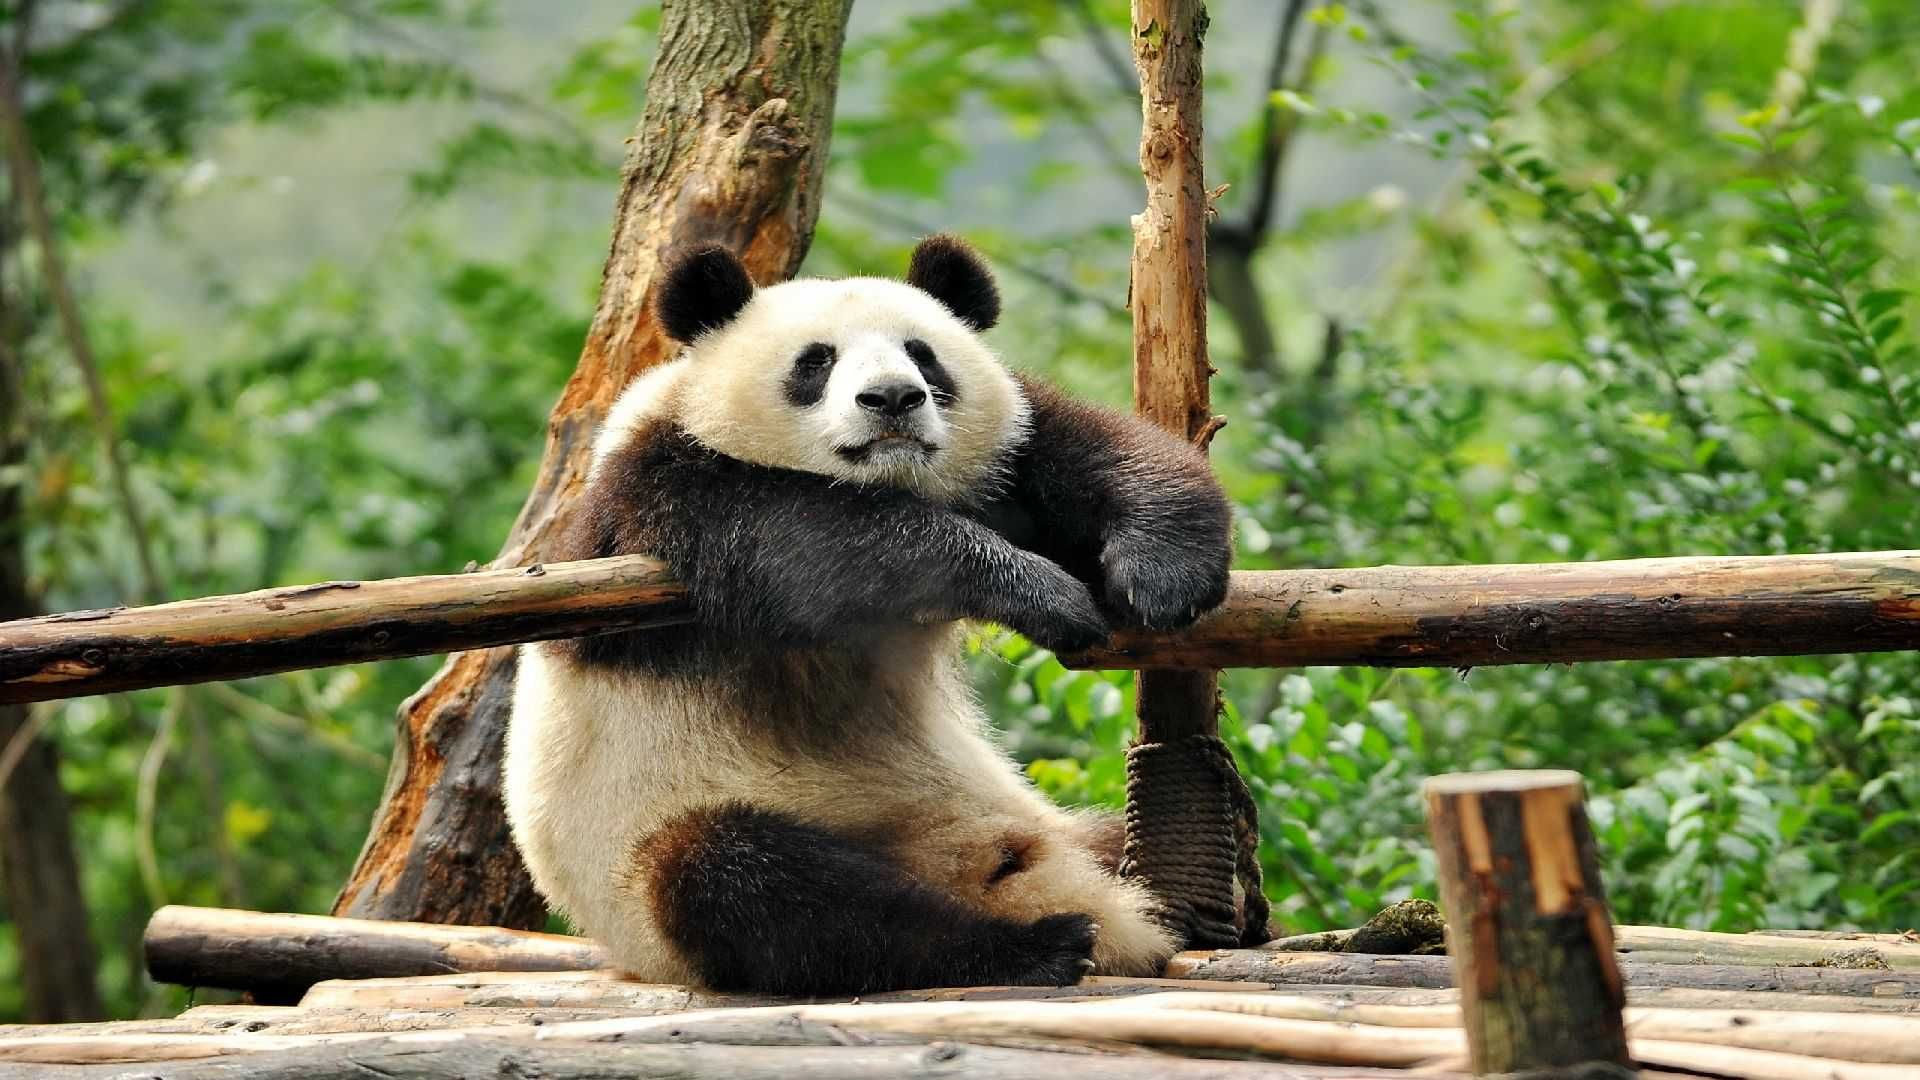 Of Wallpapers Images Panda Funny